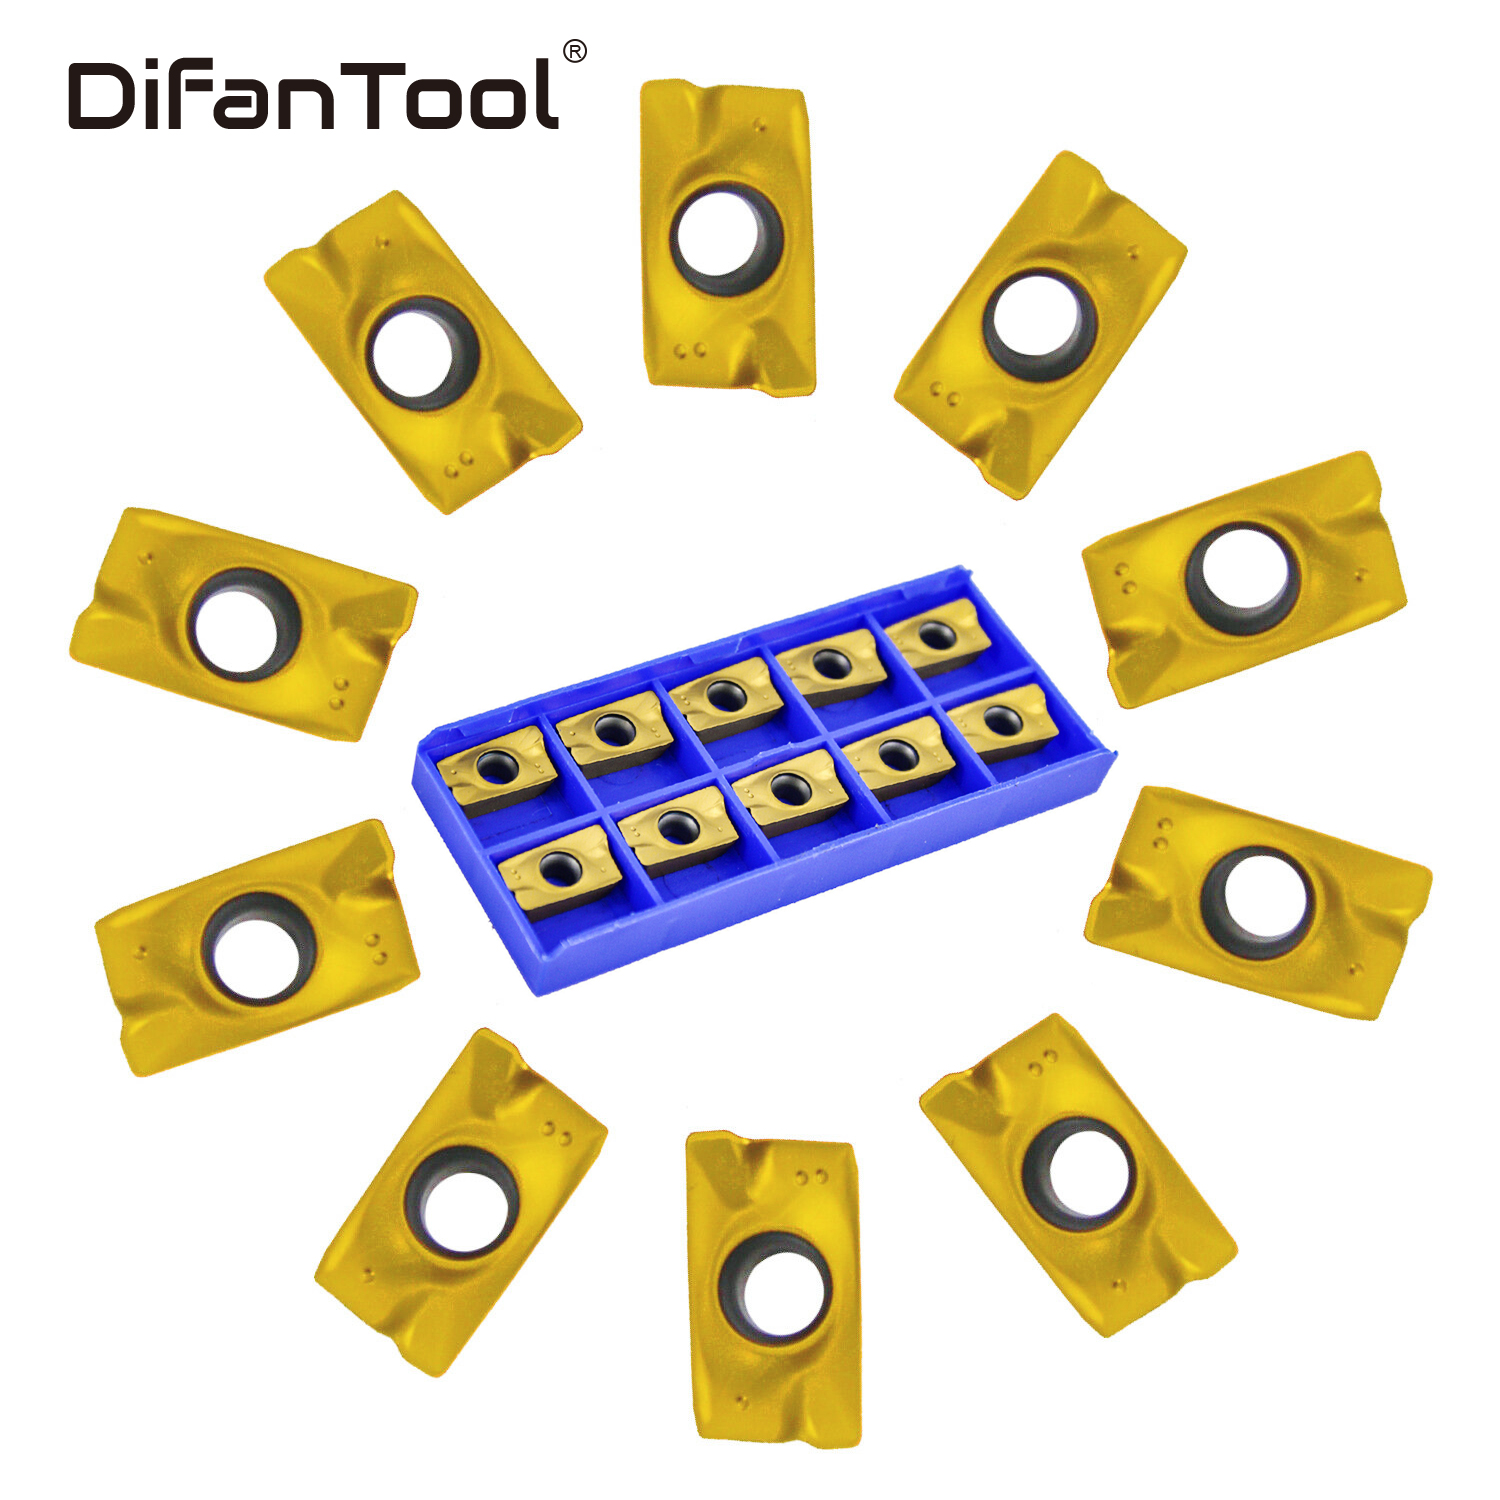 Difanmax CNC Lathe Inserts for Lathe Turning Tool Holder Replacement Insert